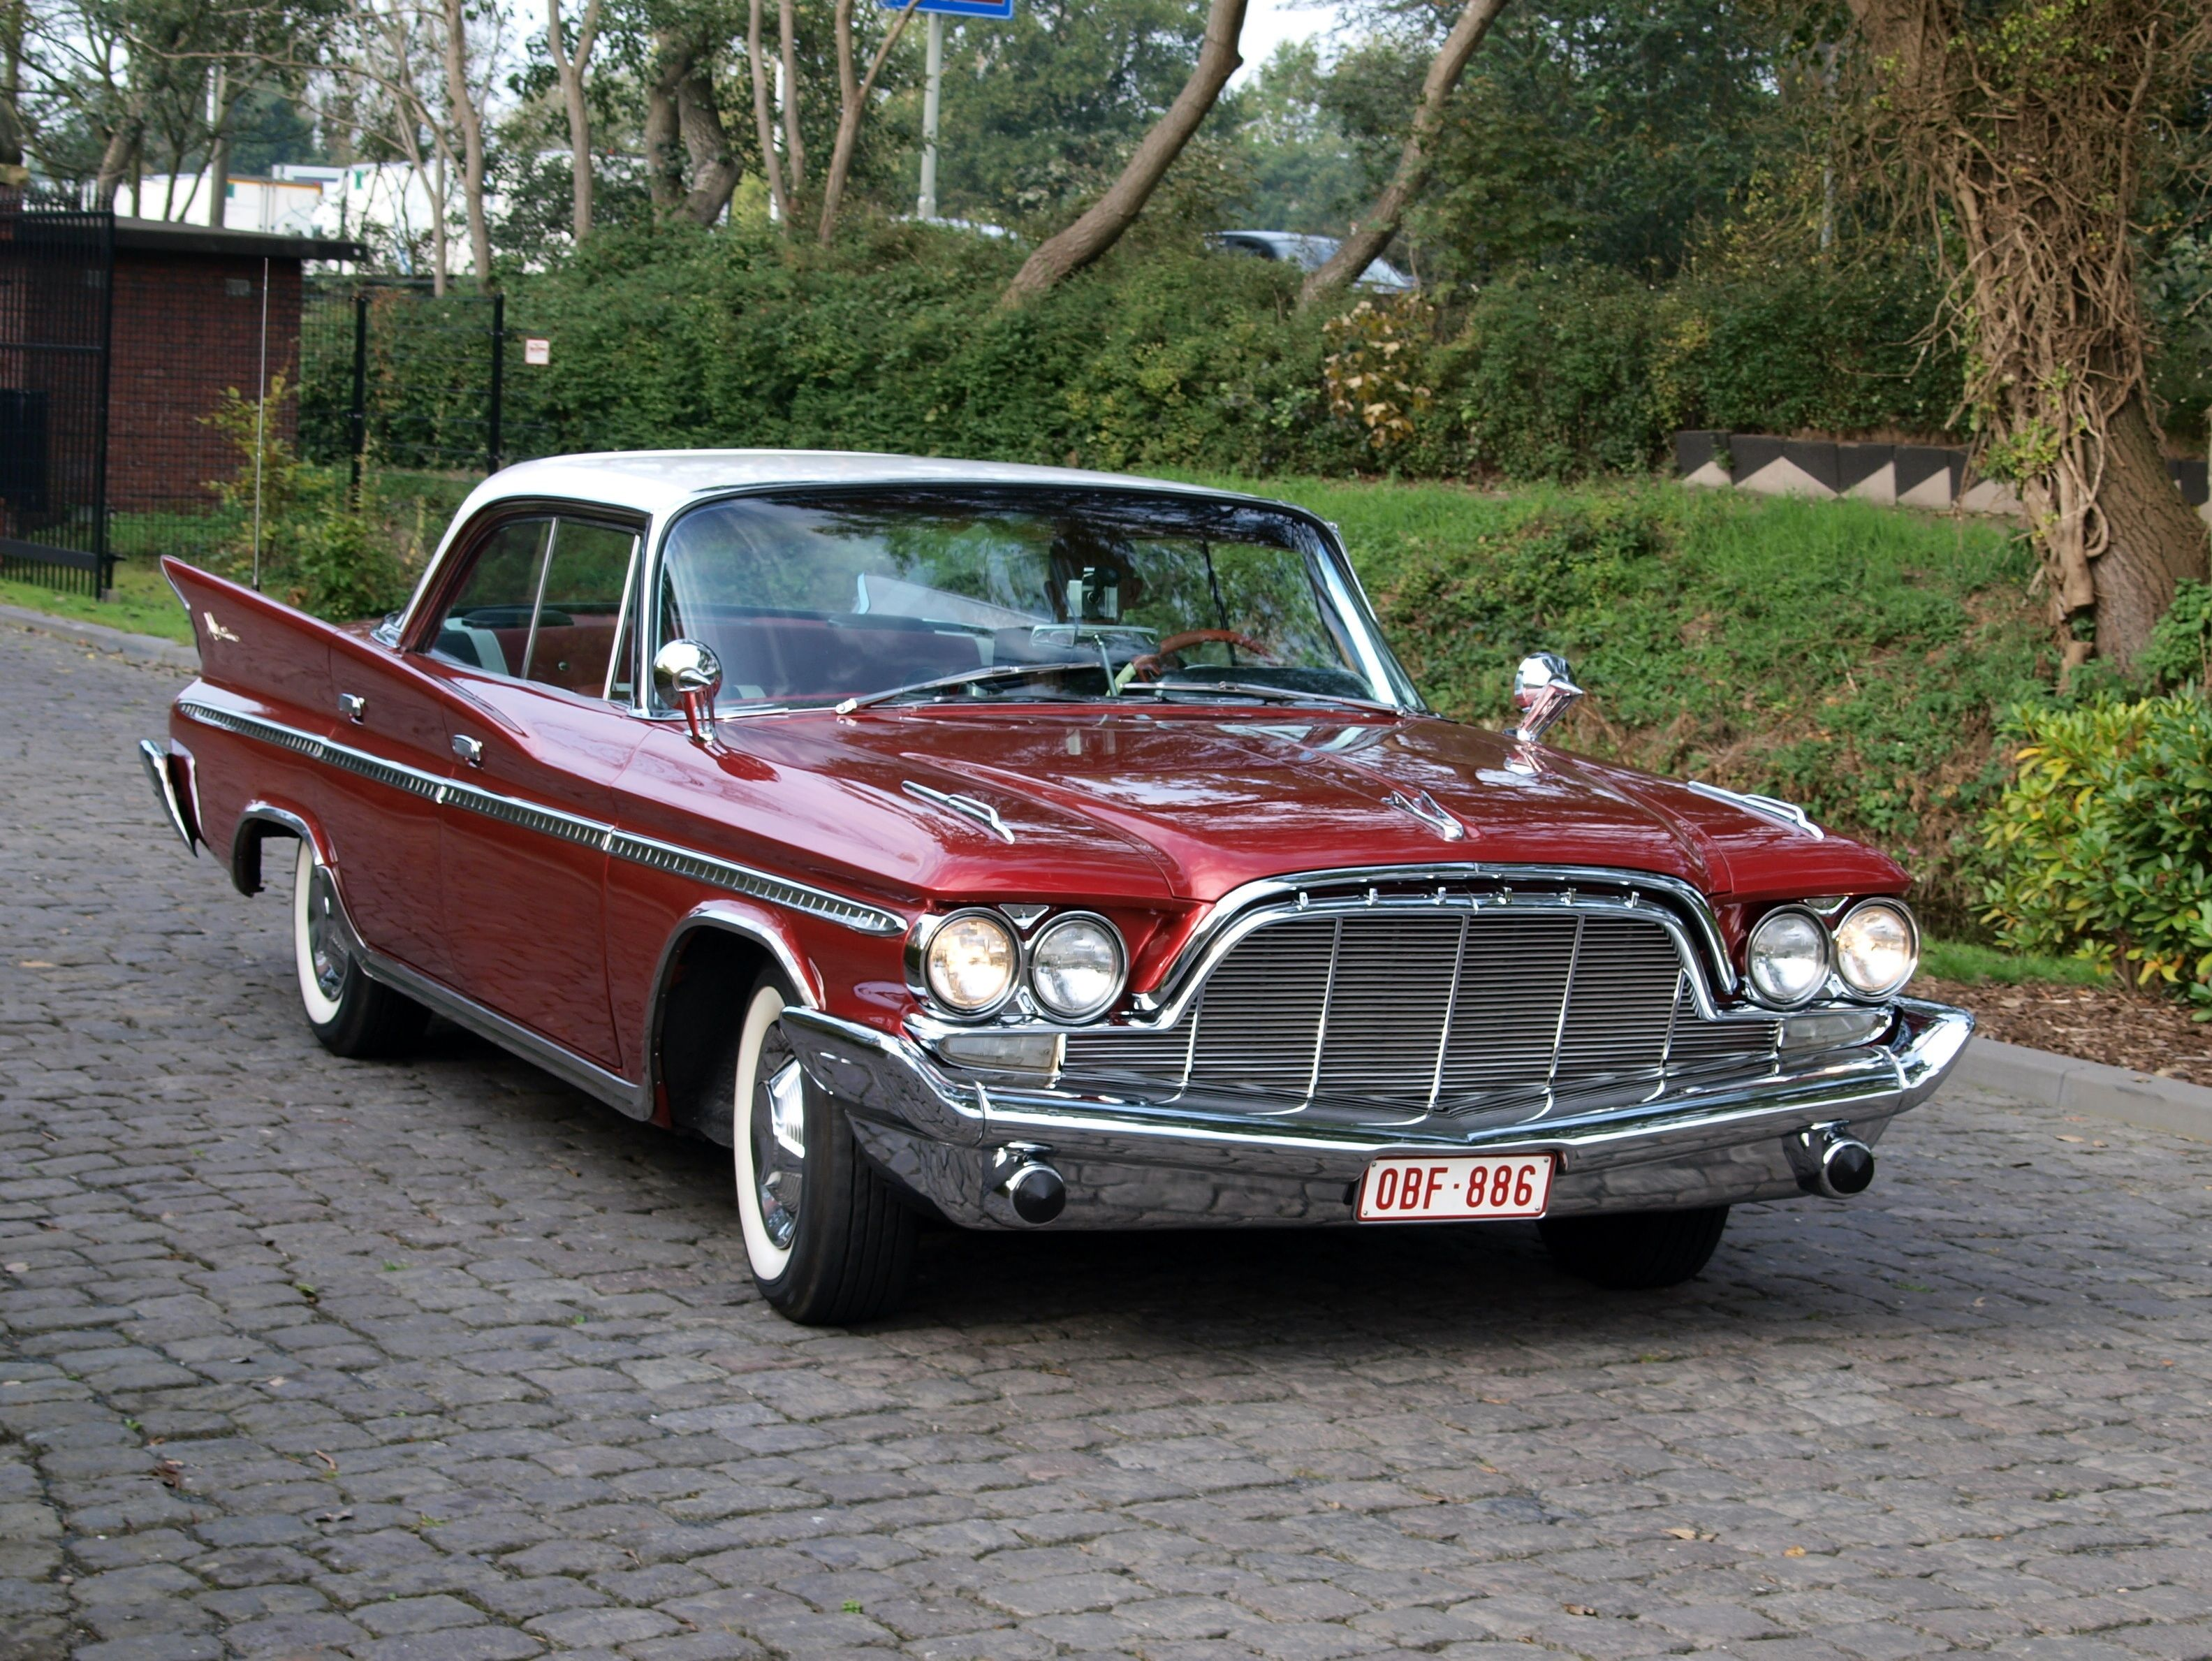 The Greatest Dead American Car Brands From The 1950s Car Brands Car Vintage Cars